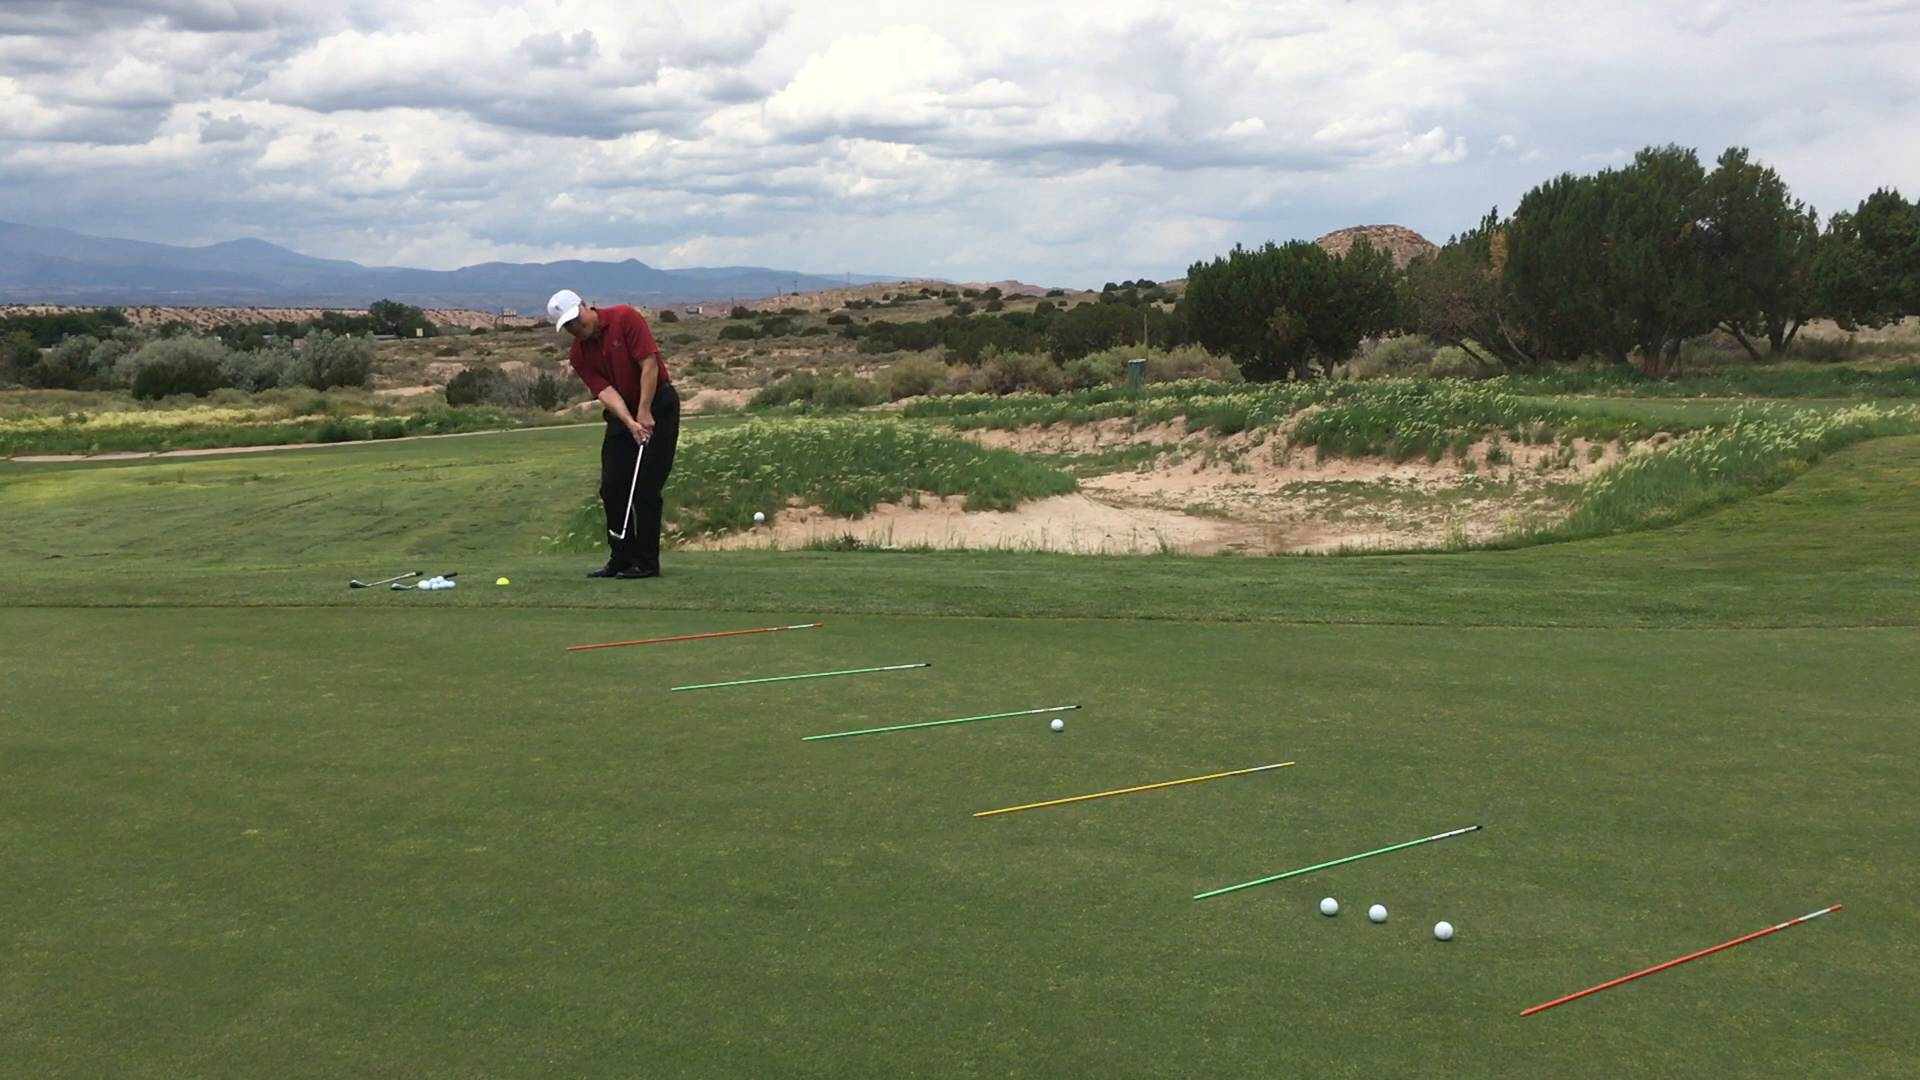 3x5 Ladder Chipping Drill to Gain Feel Around Green